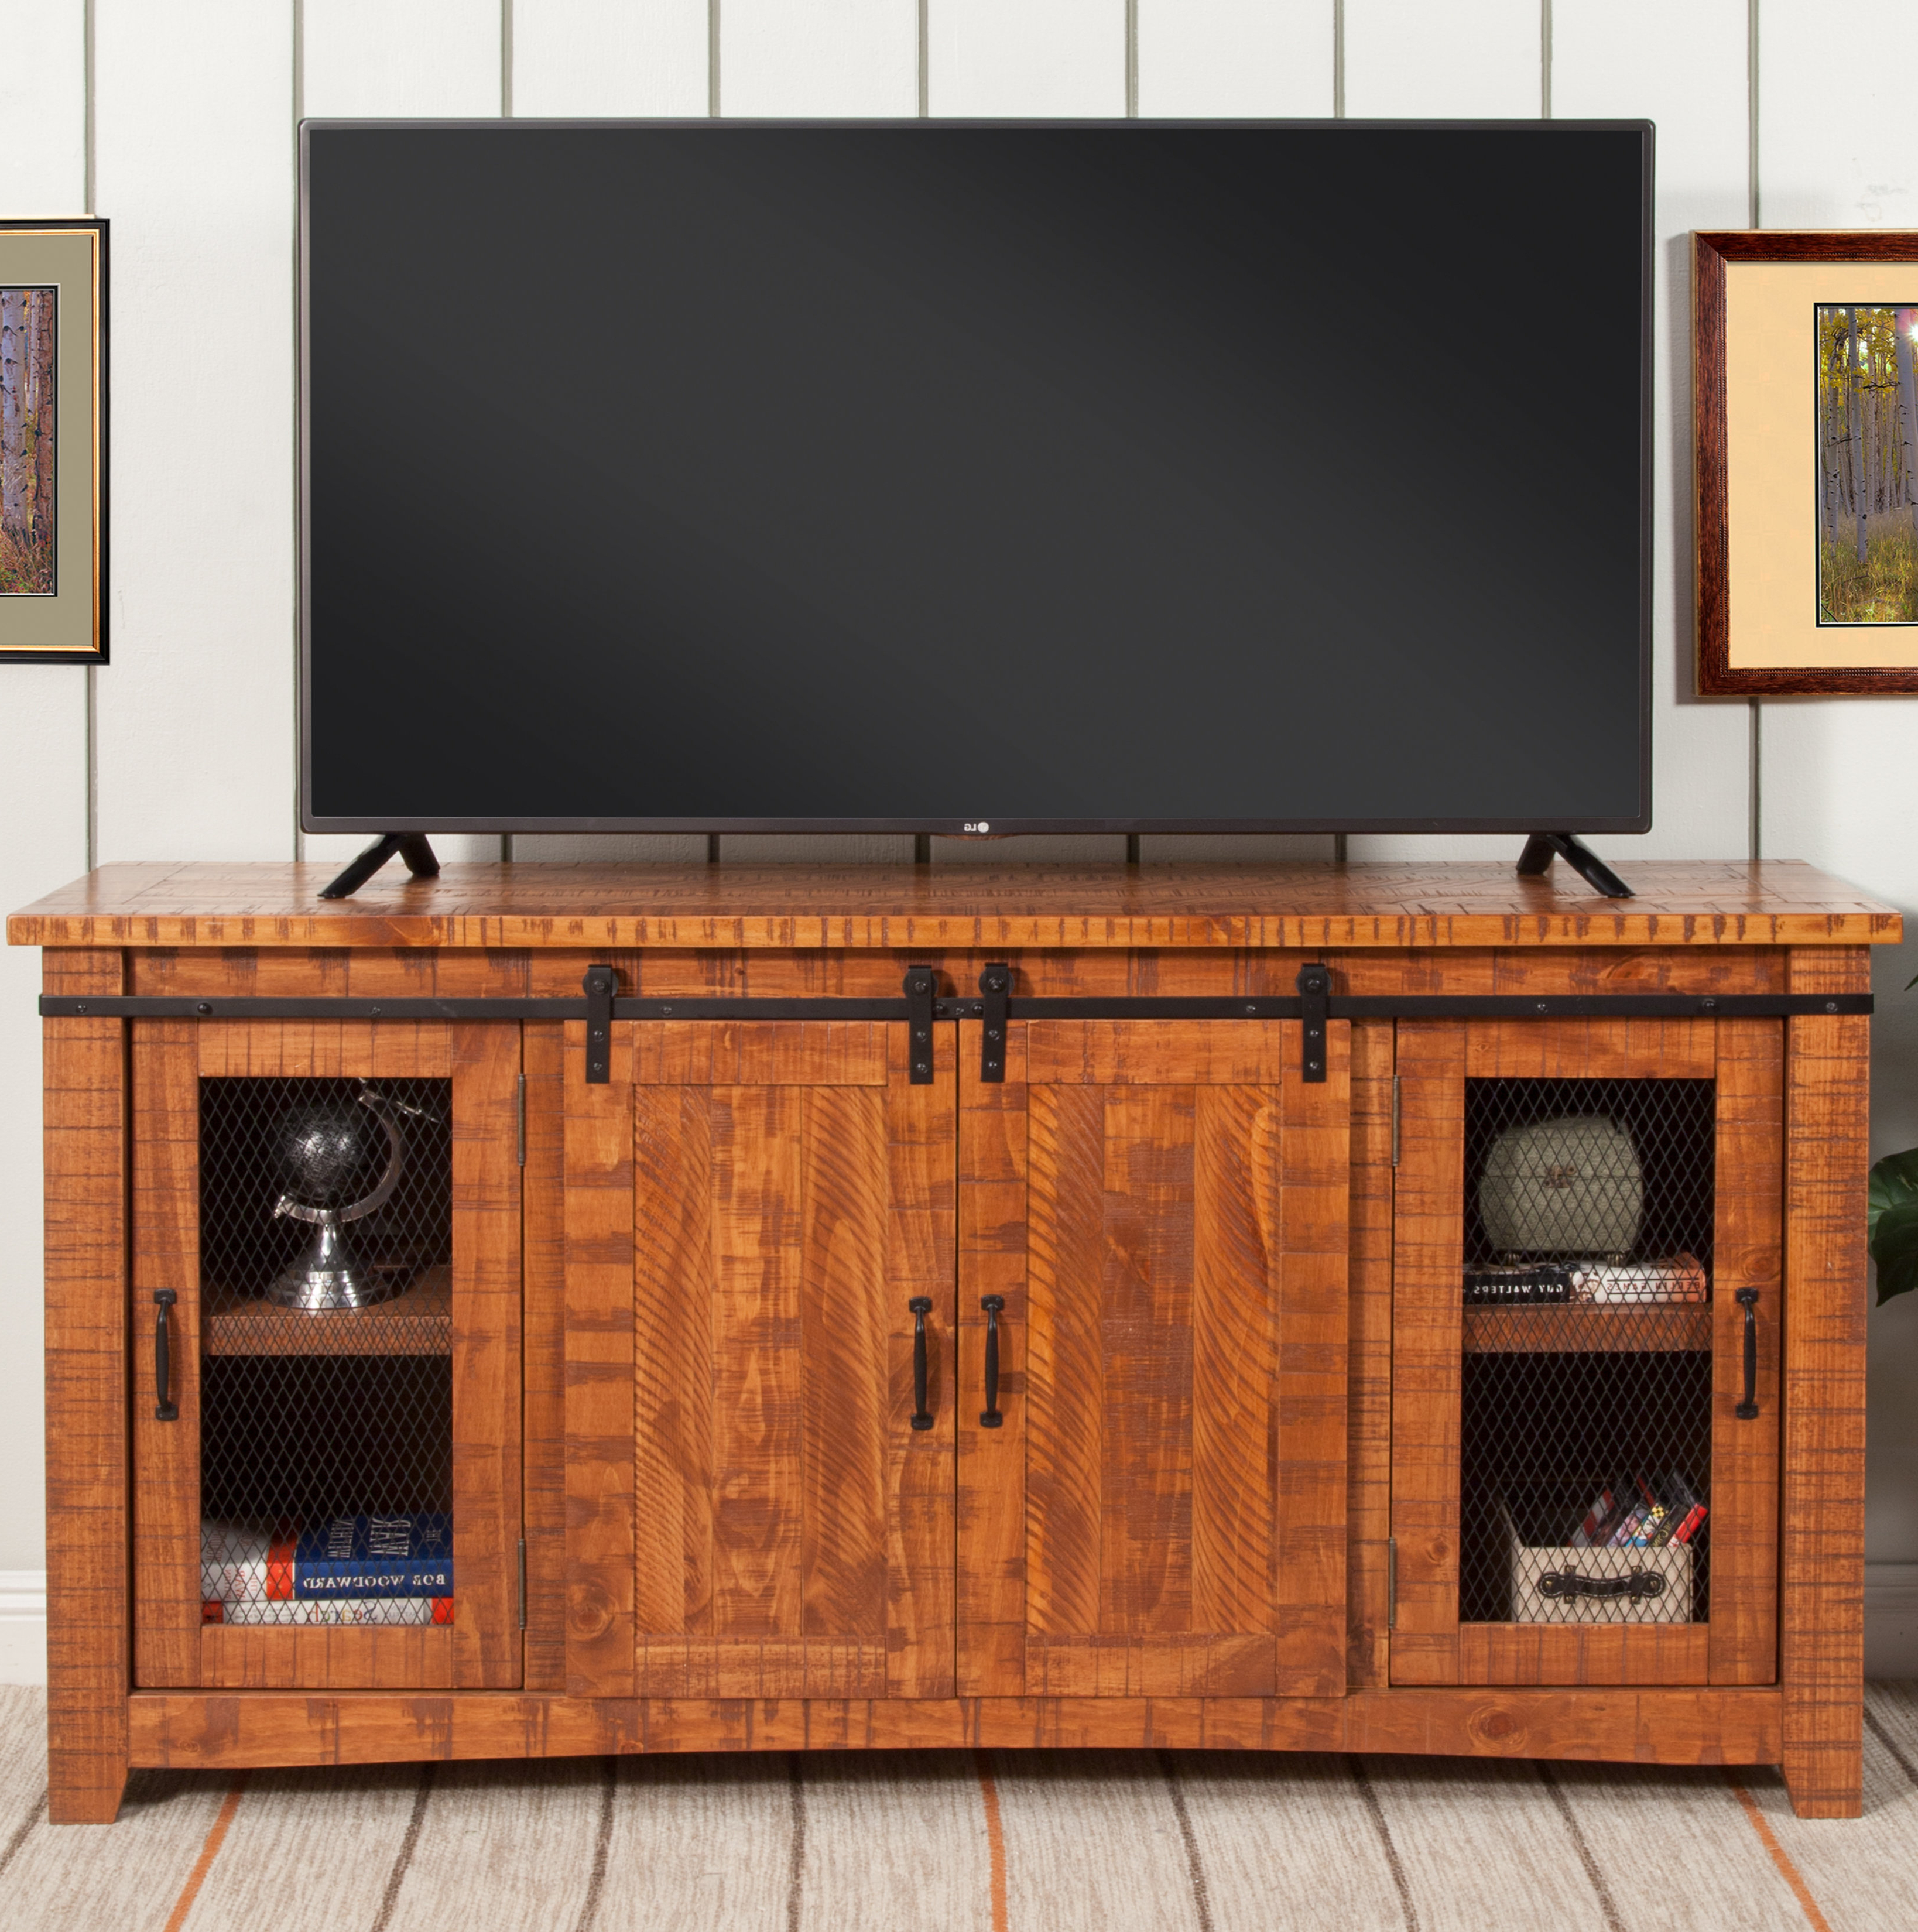 Wayfair Intended For Most Up To Date Tv Stands For Large Tvs (View 19 of 20)